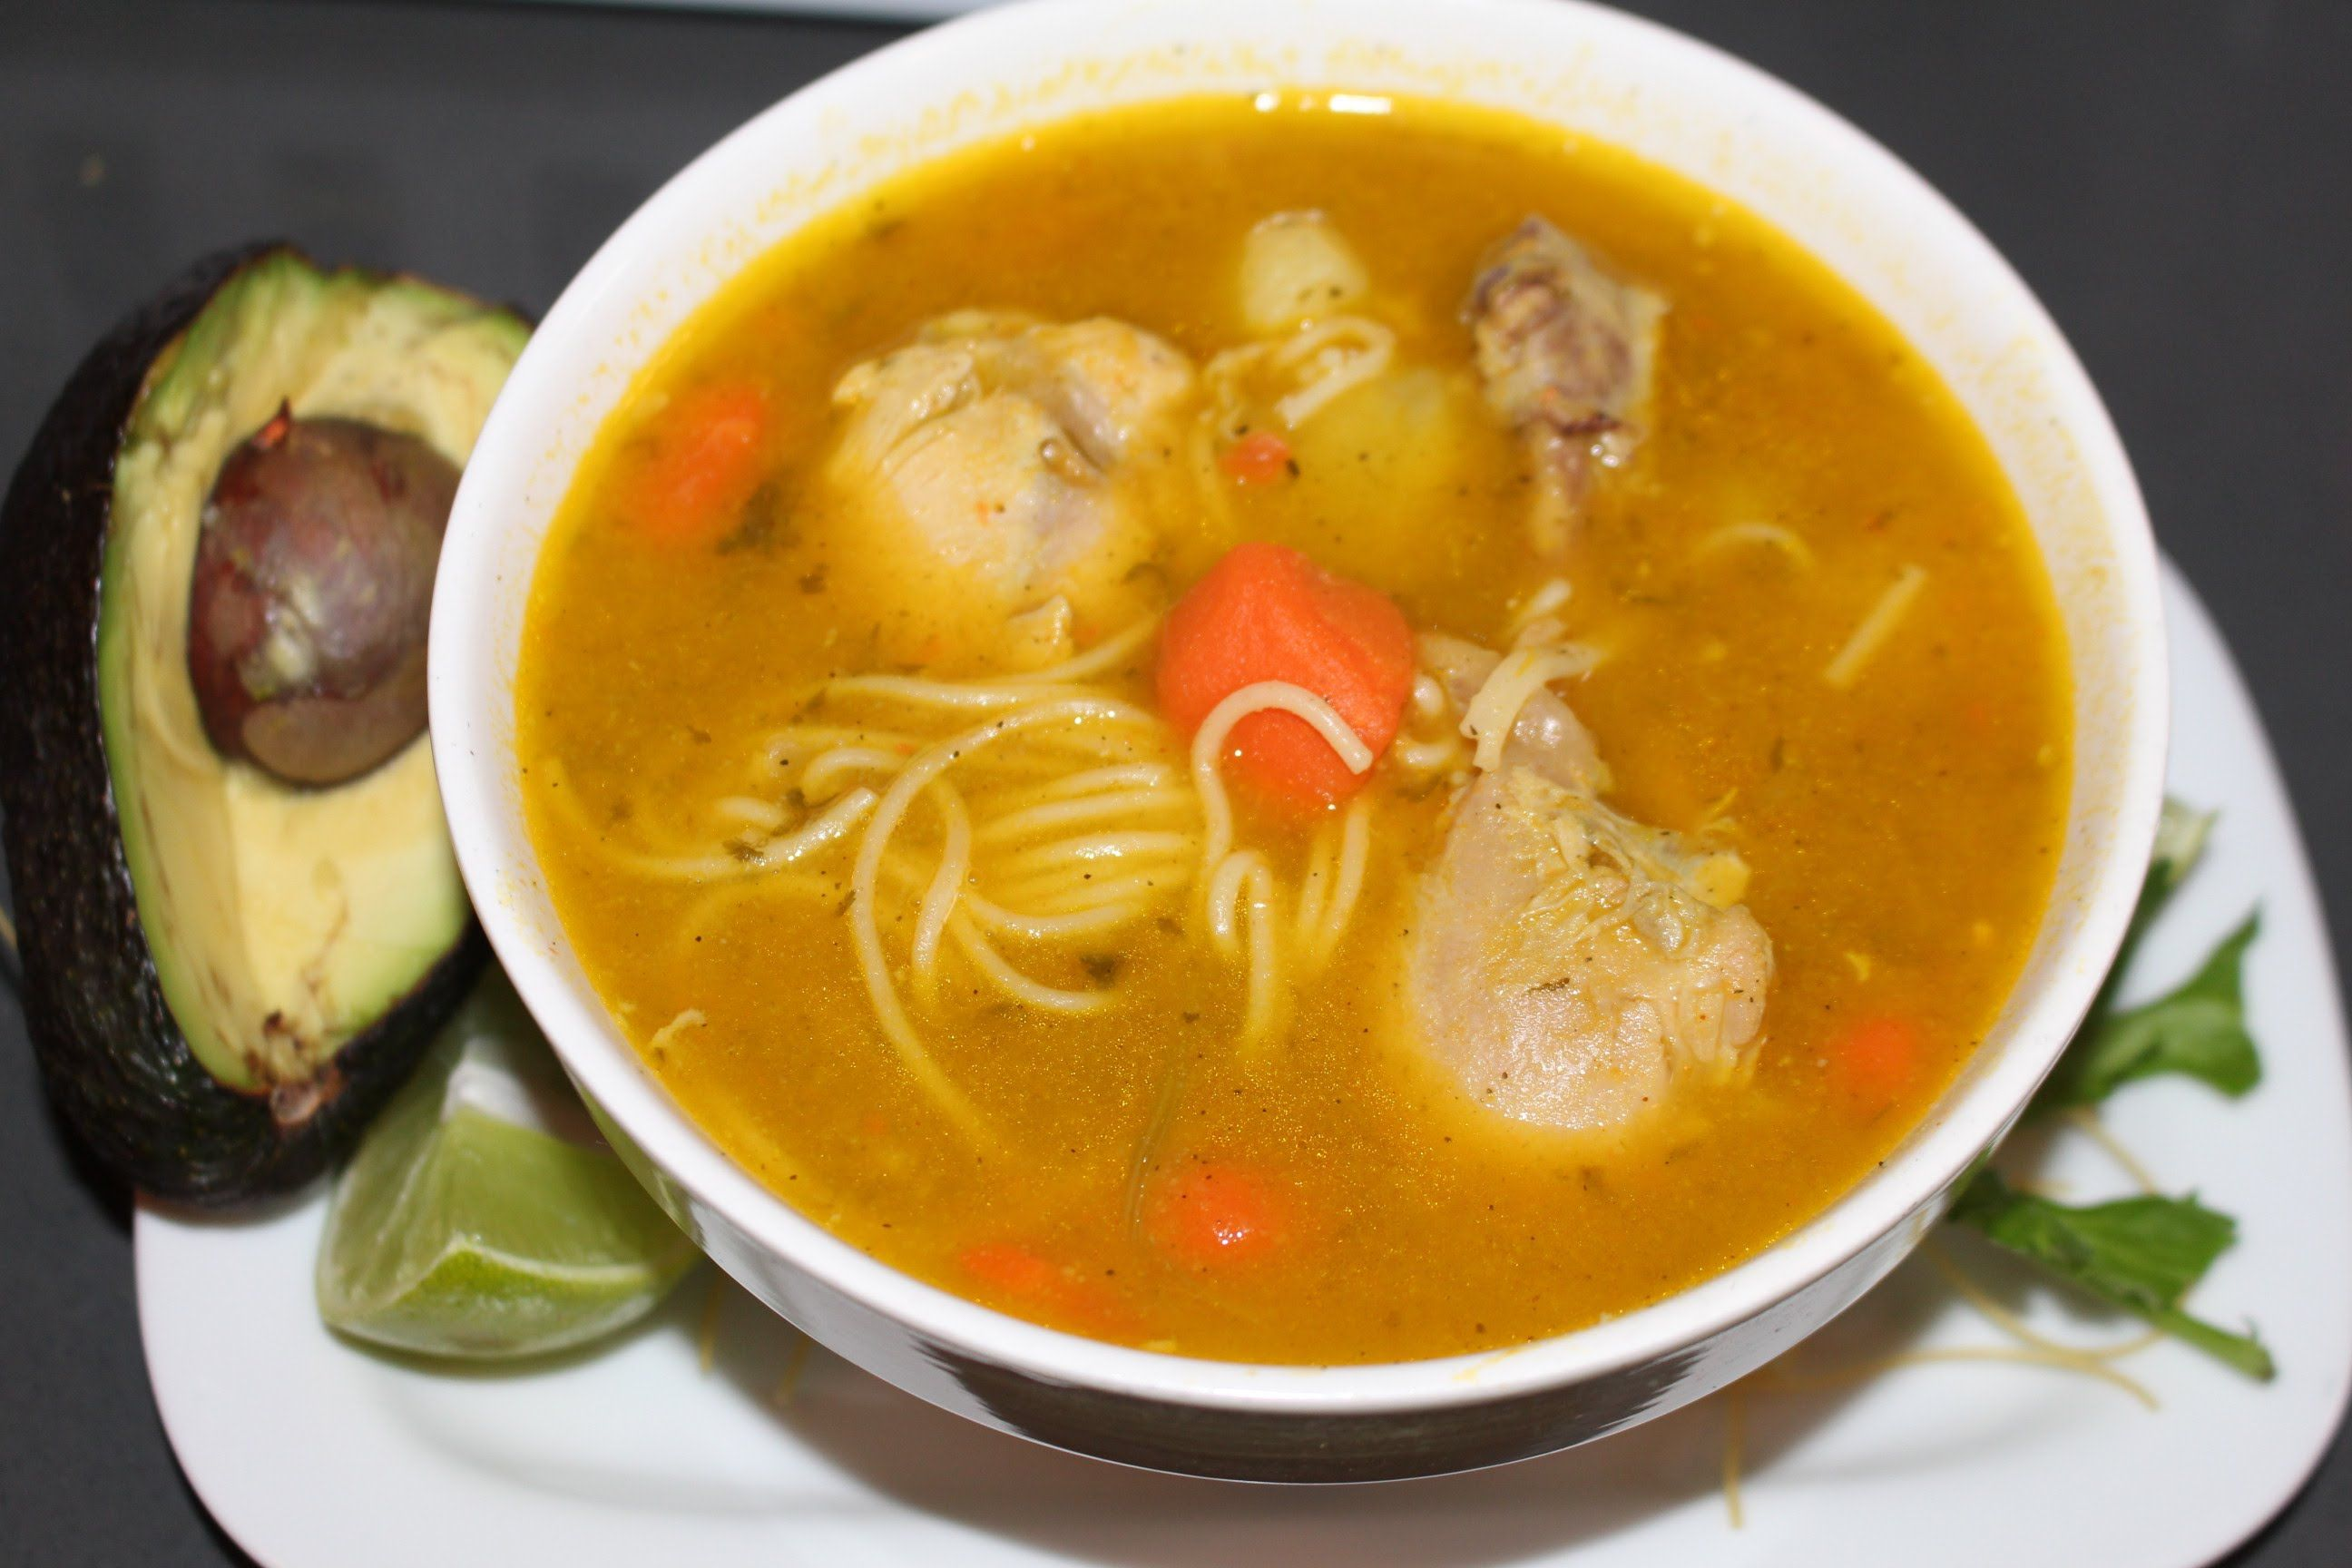 Chicken noodle soup dominican style dominican food pinterest chicken noodle soup dominican style forumfinder Images